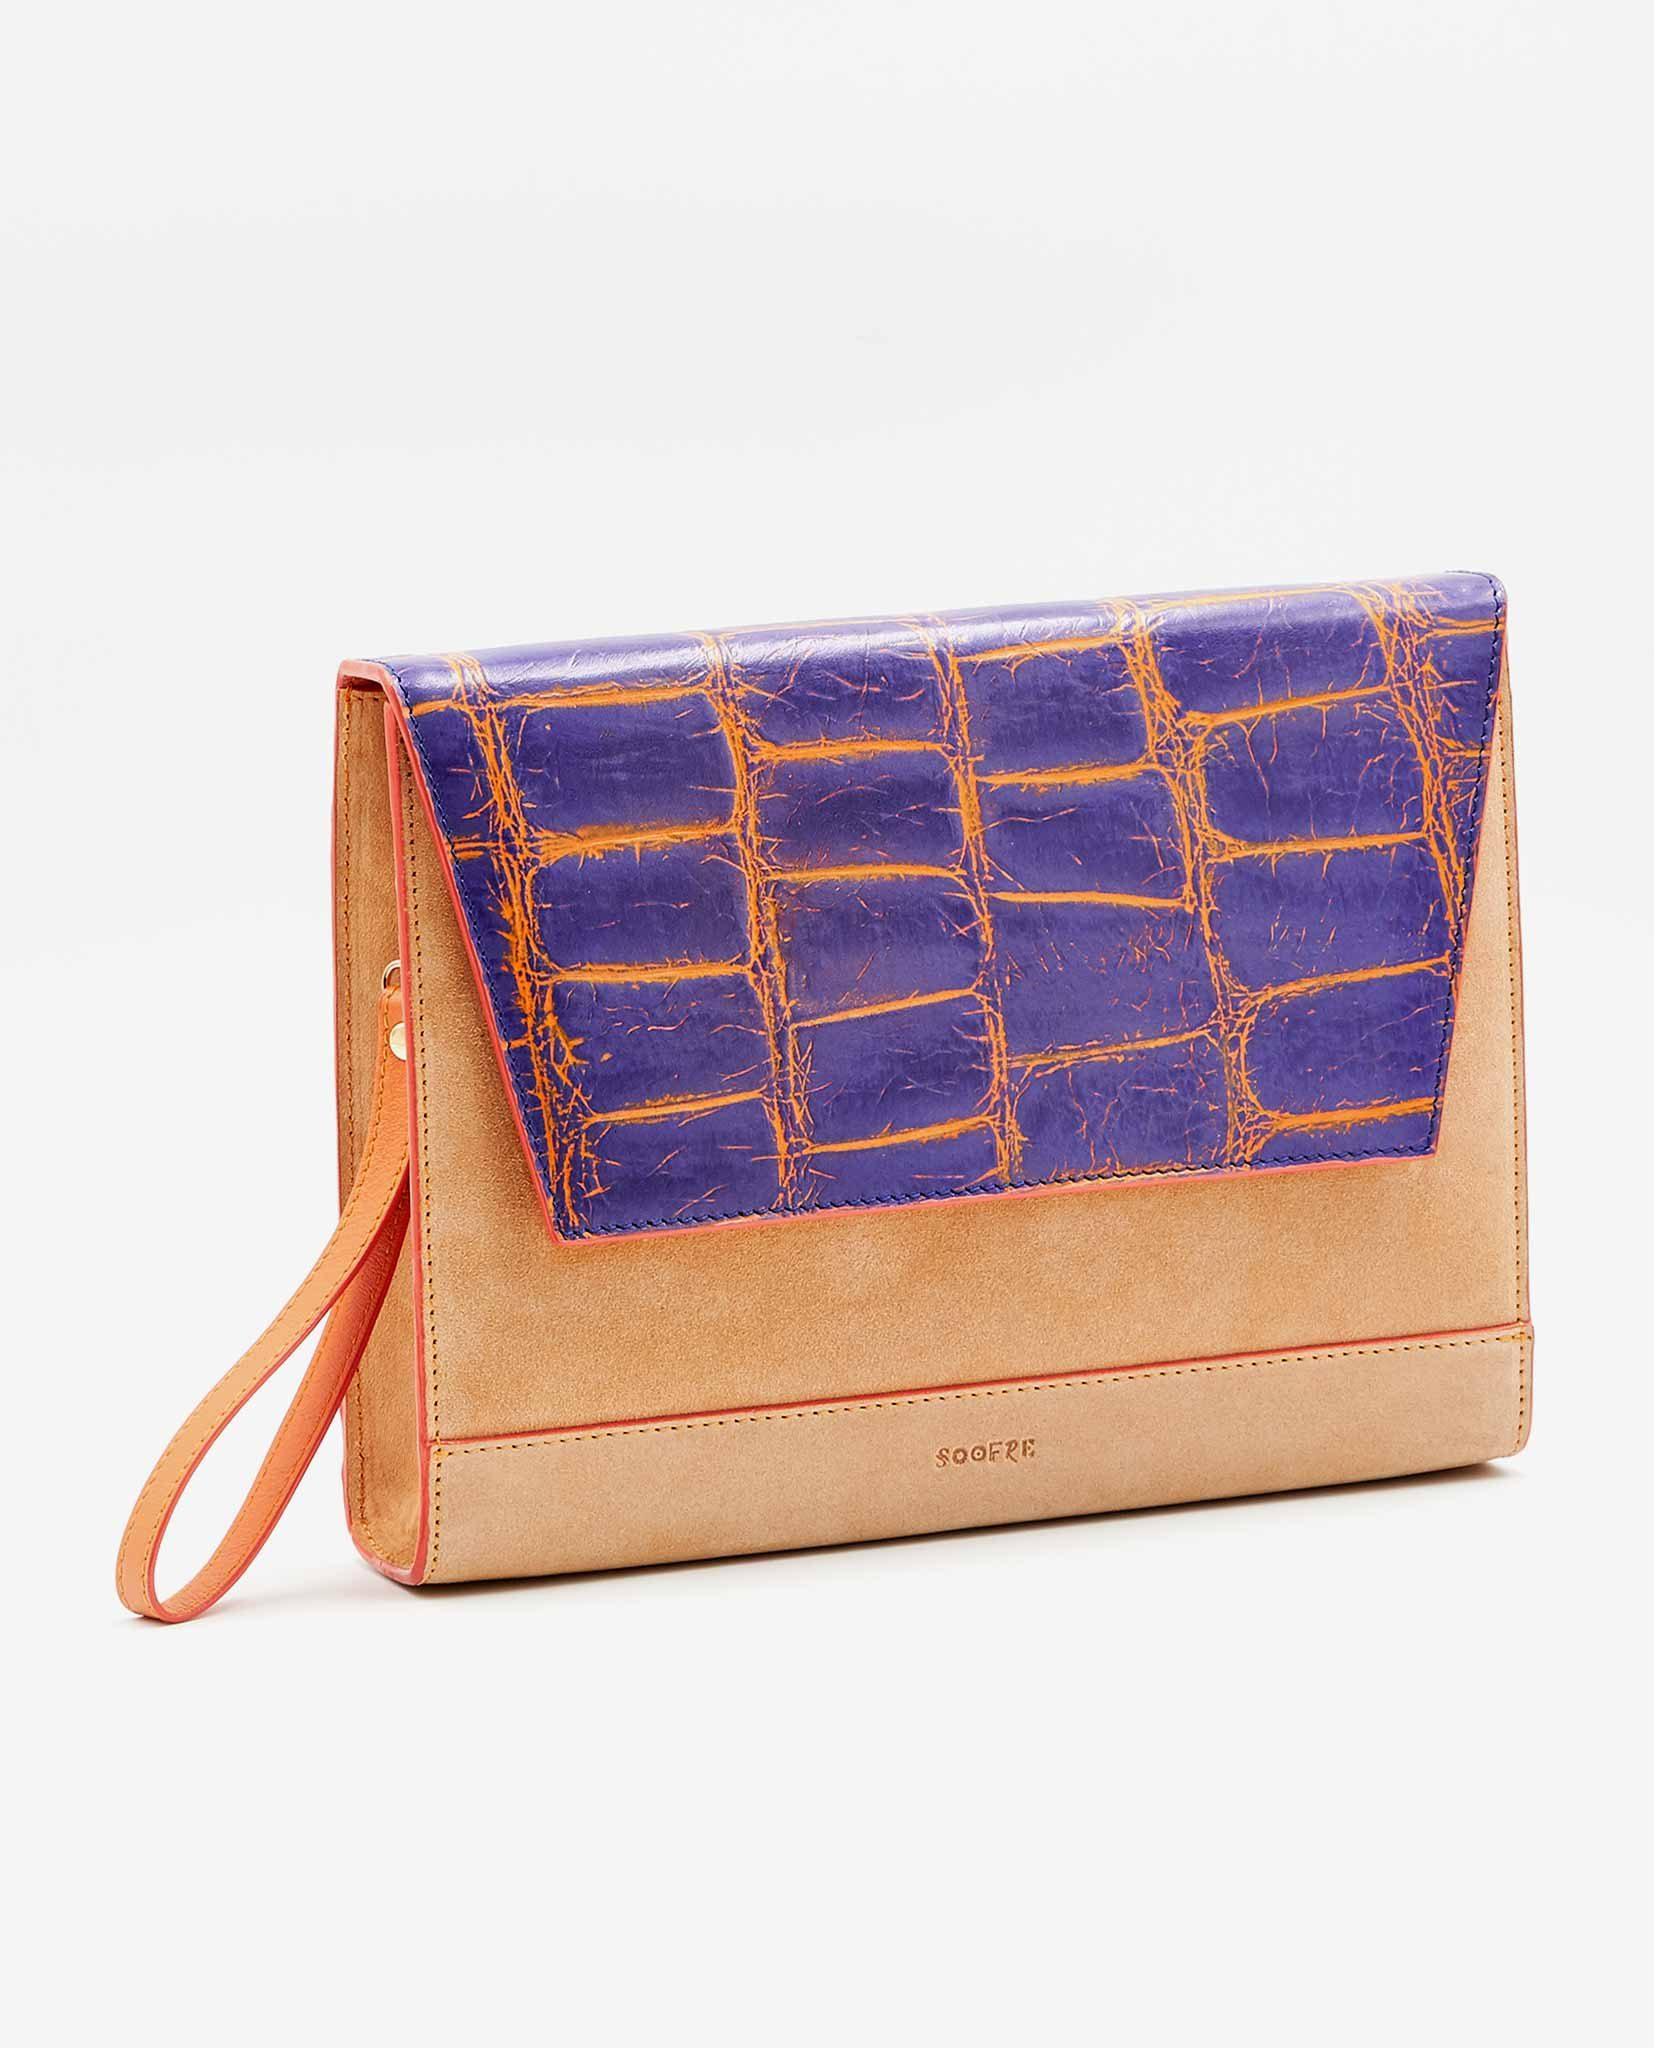 SOOFRE Berlin unique Clutch croco purple orange apricot